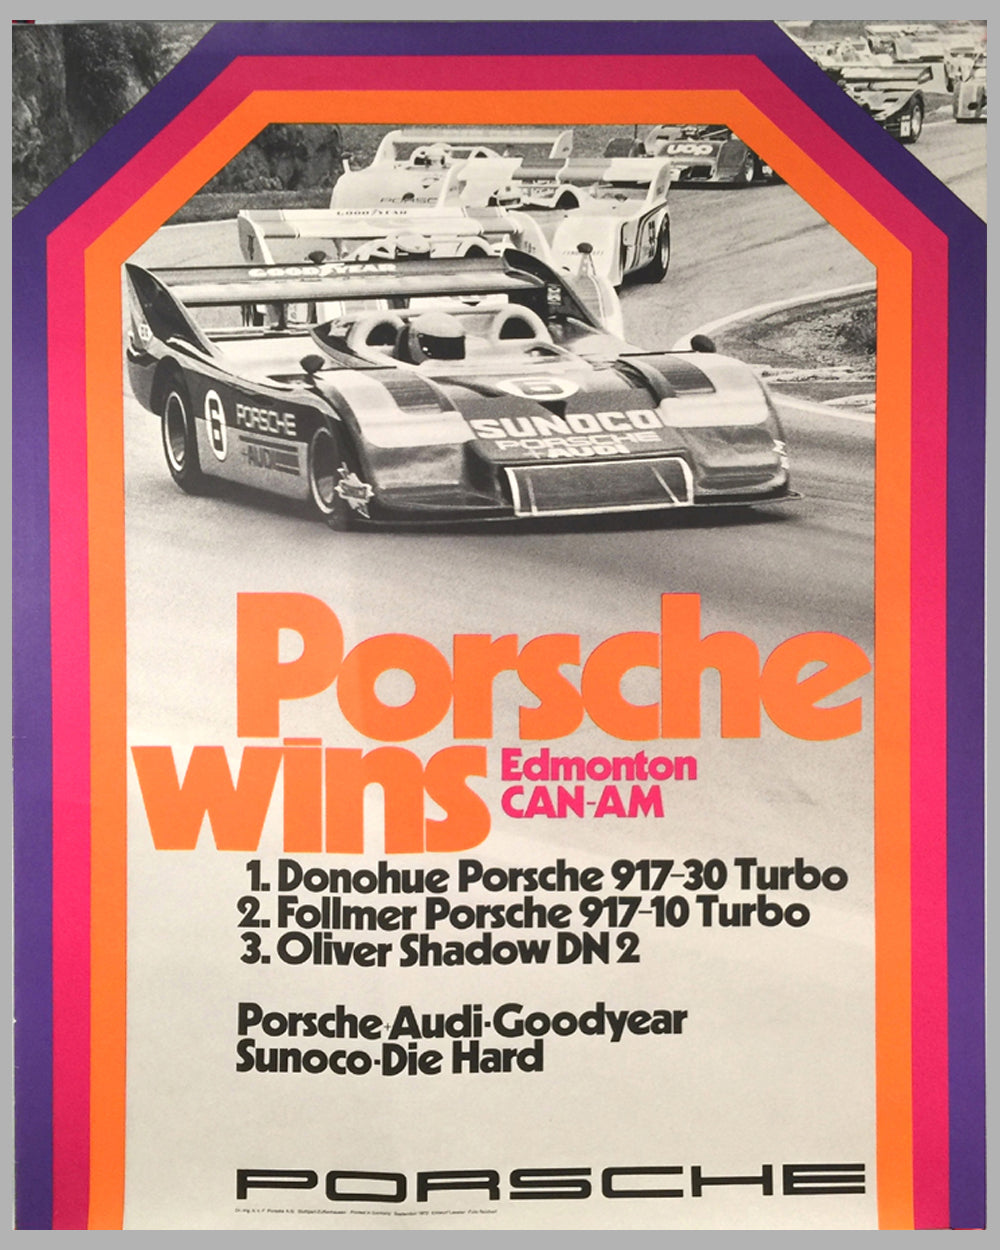 1973 Porsche wins Edmonton Can Am Porsche Factory Victory Poster